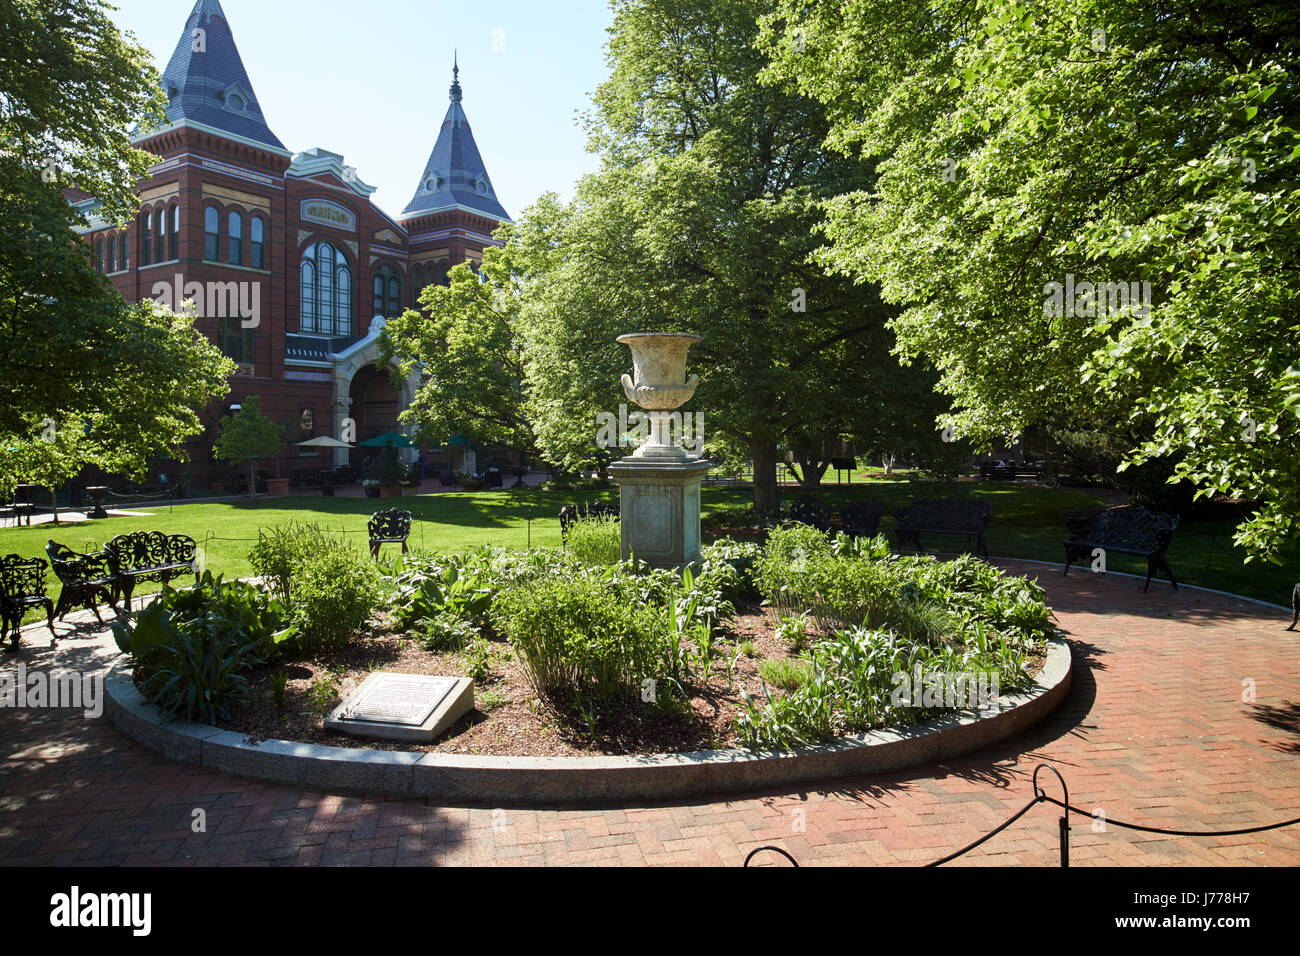 smithsonian arts and industries building and enid haupt gardens Washington DC USA - Stock Image